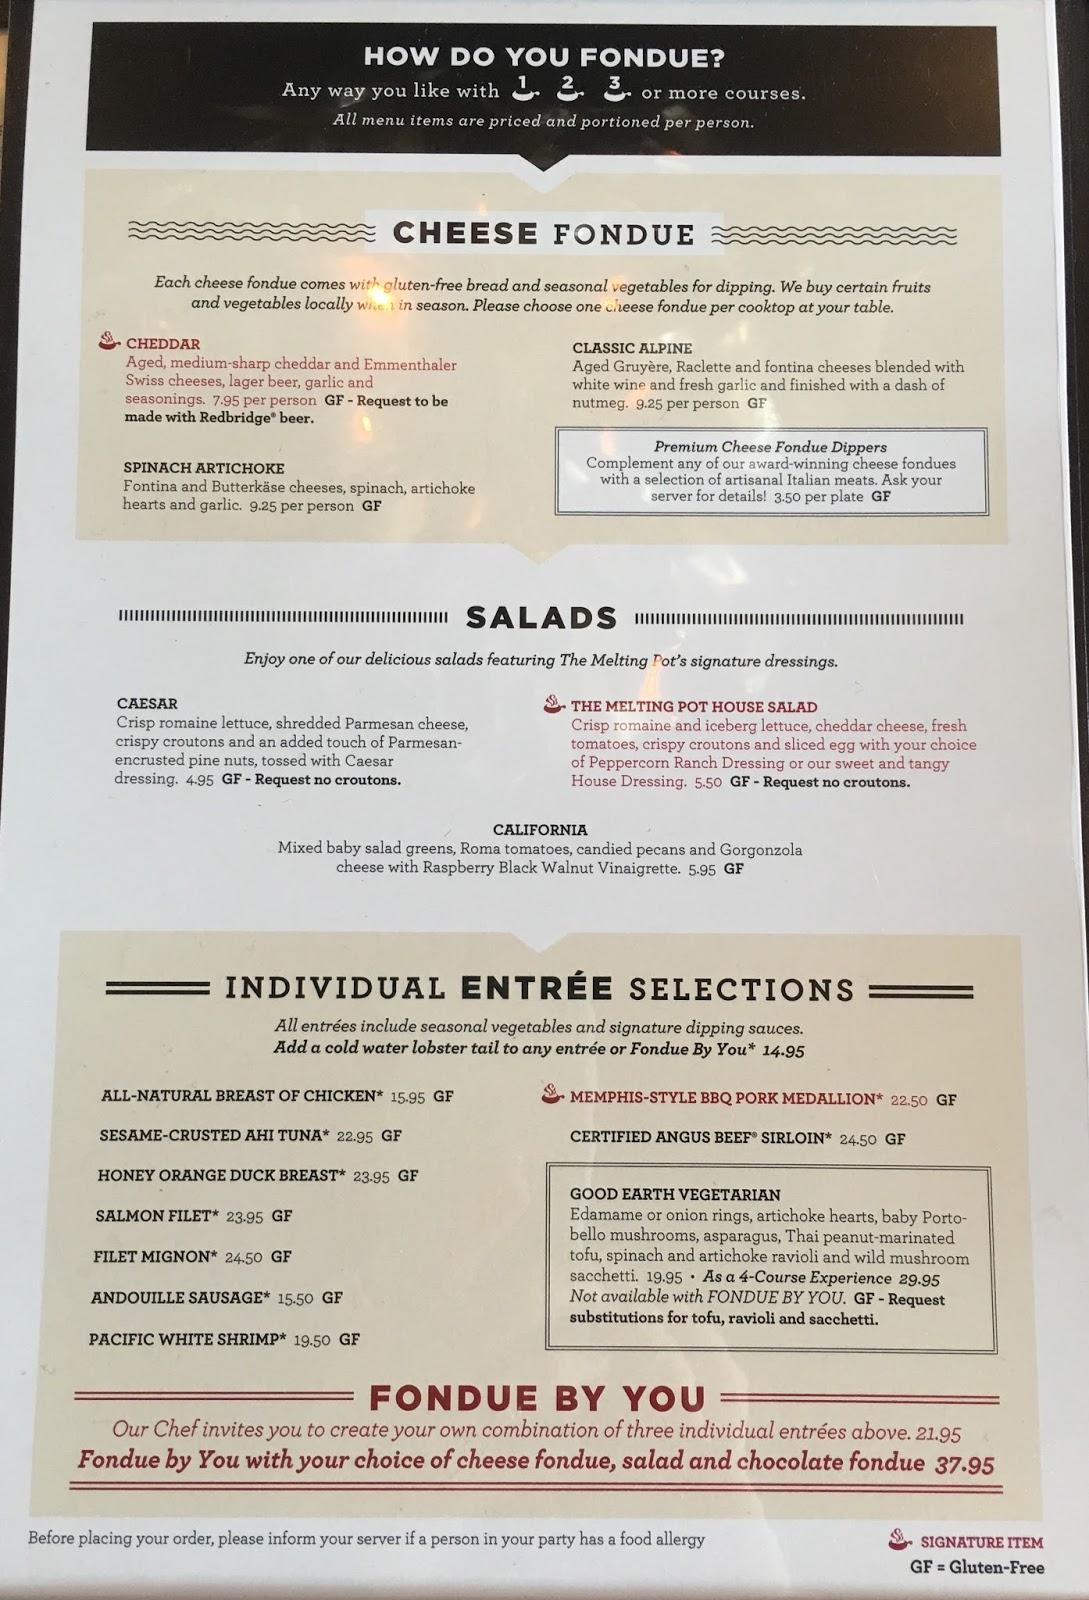 My Daughters And I Decided To Try The Four Course Experience Which Includes Cheese Fondue Salad An Entree And Chocolate Fondue